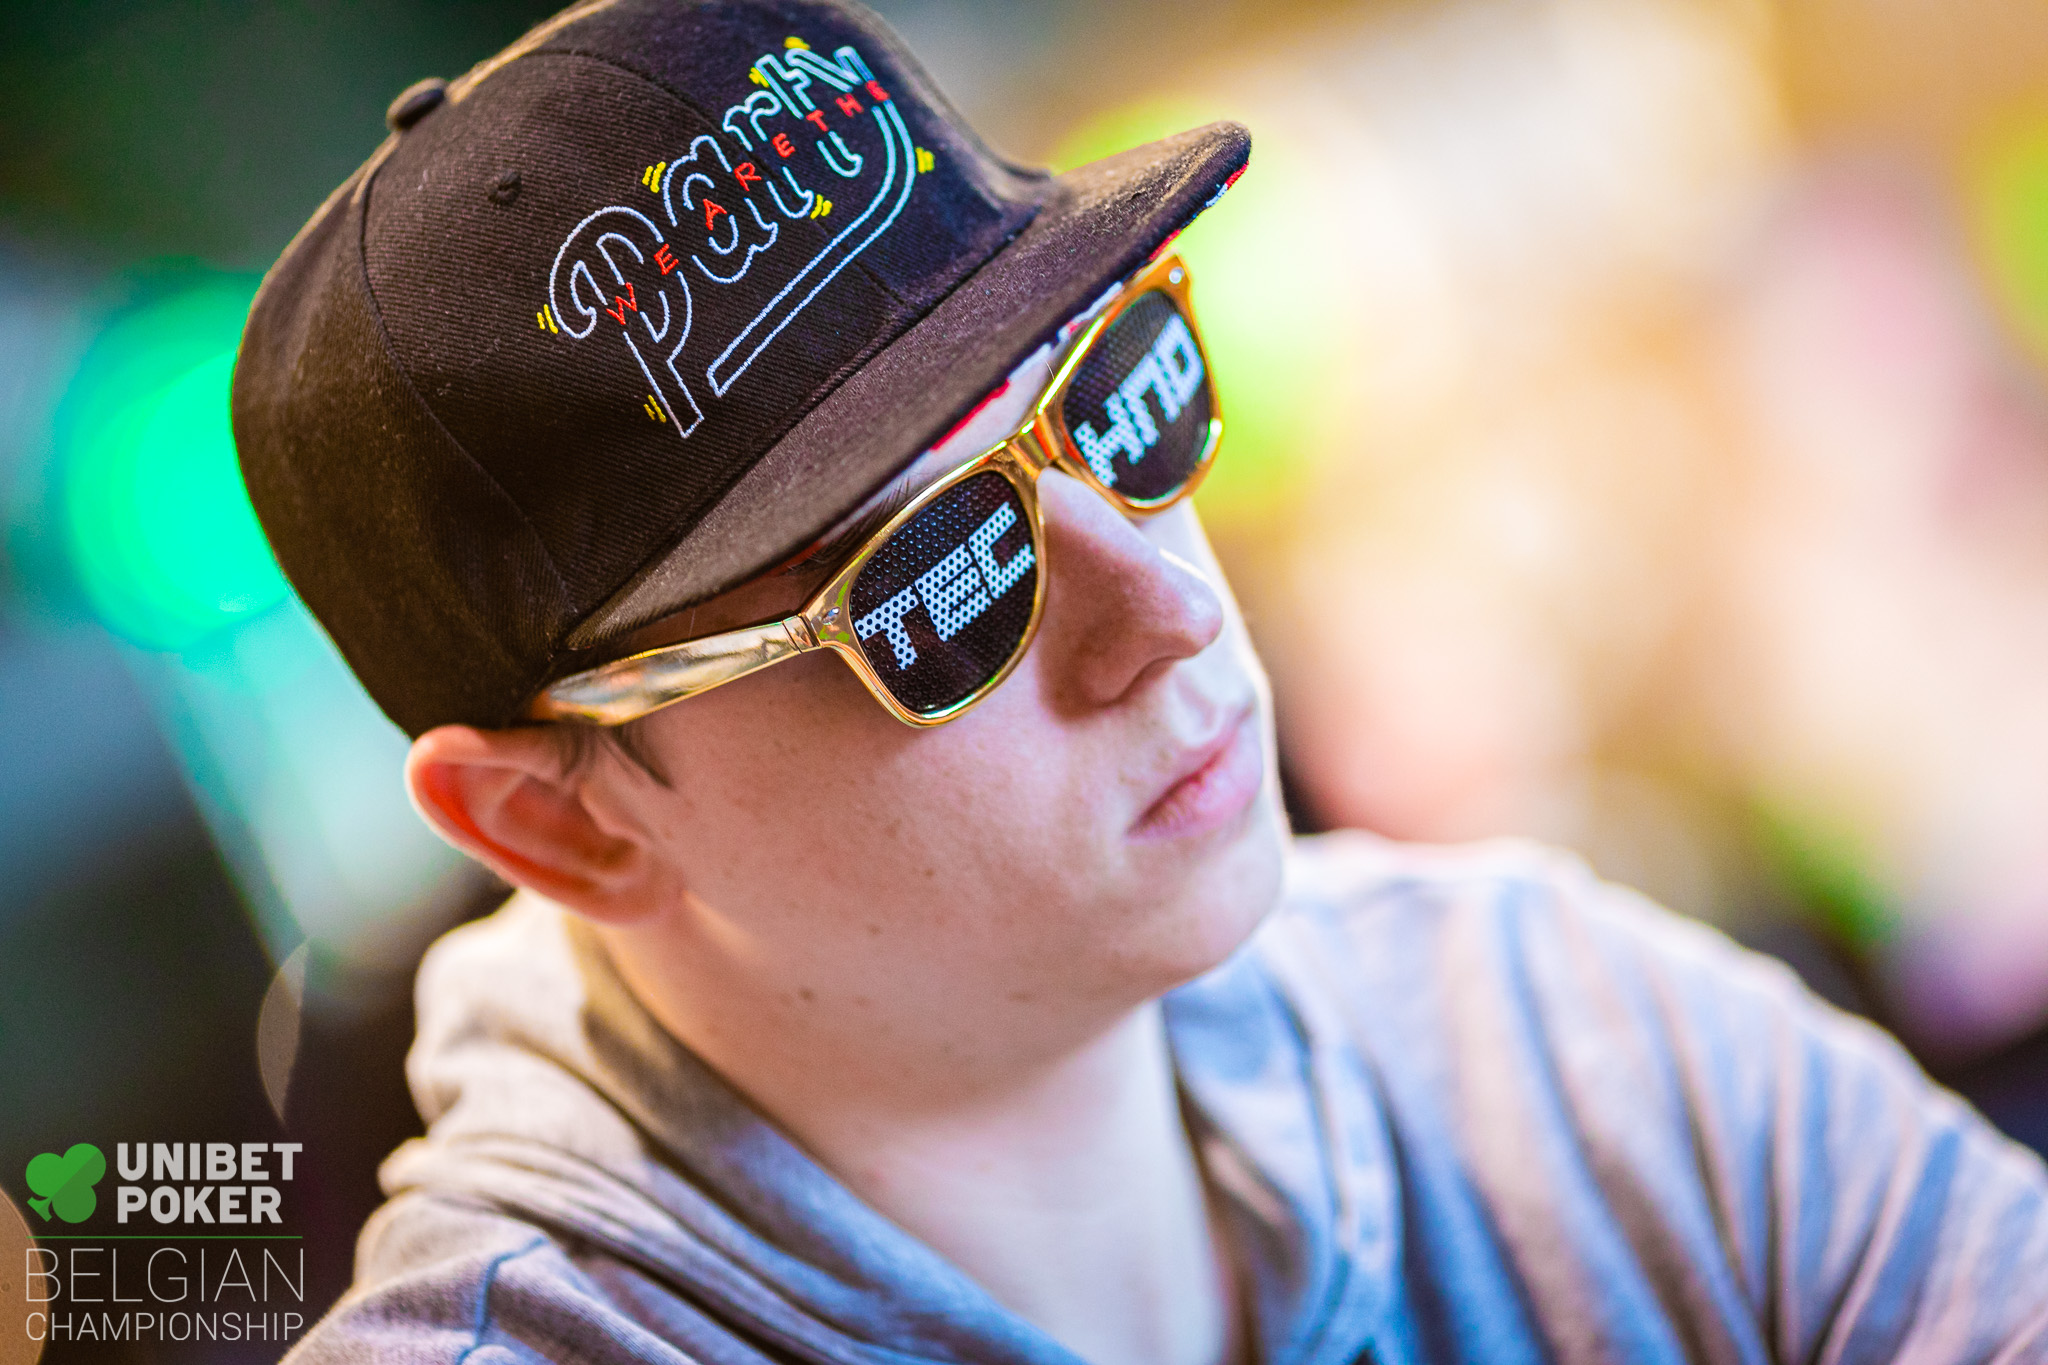 Unibet Poker Belgian Championship 2019 - Main Event (Final Day) 023 ((C) Tambet Kask 2019)